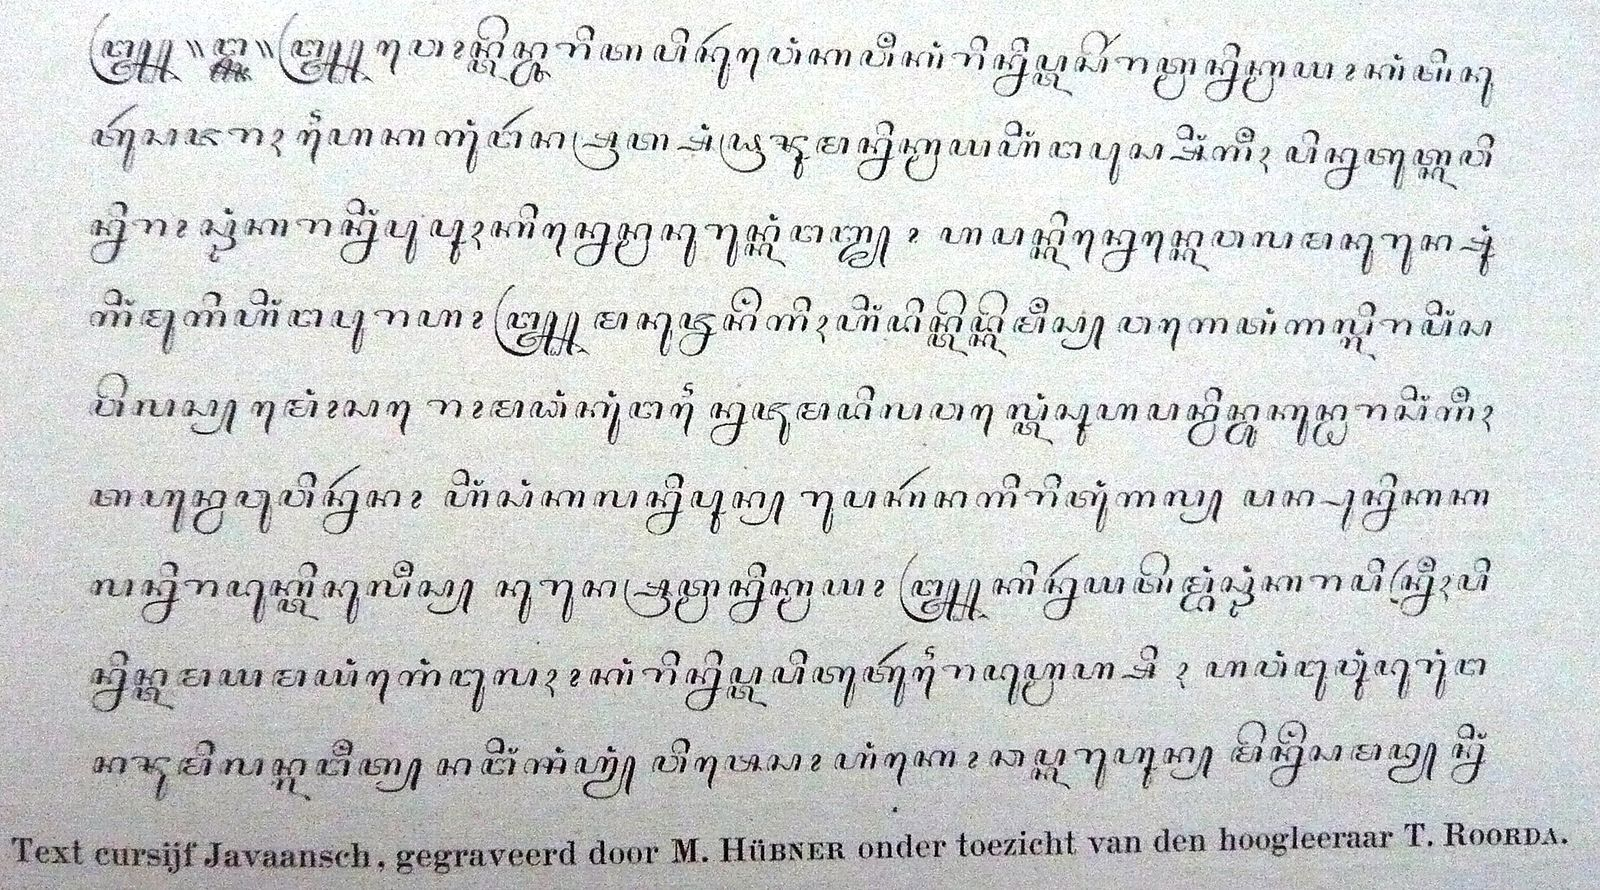 FileEnschedeJava letters Huruf Jawa by M Hubner and